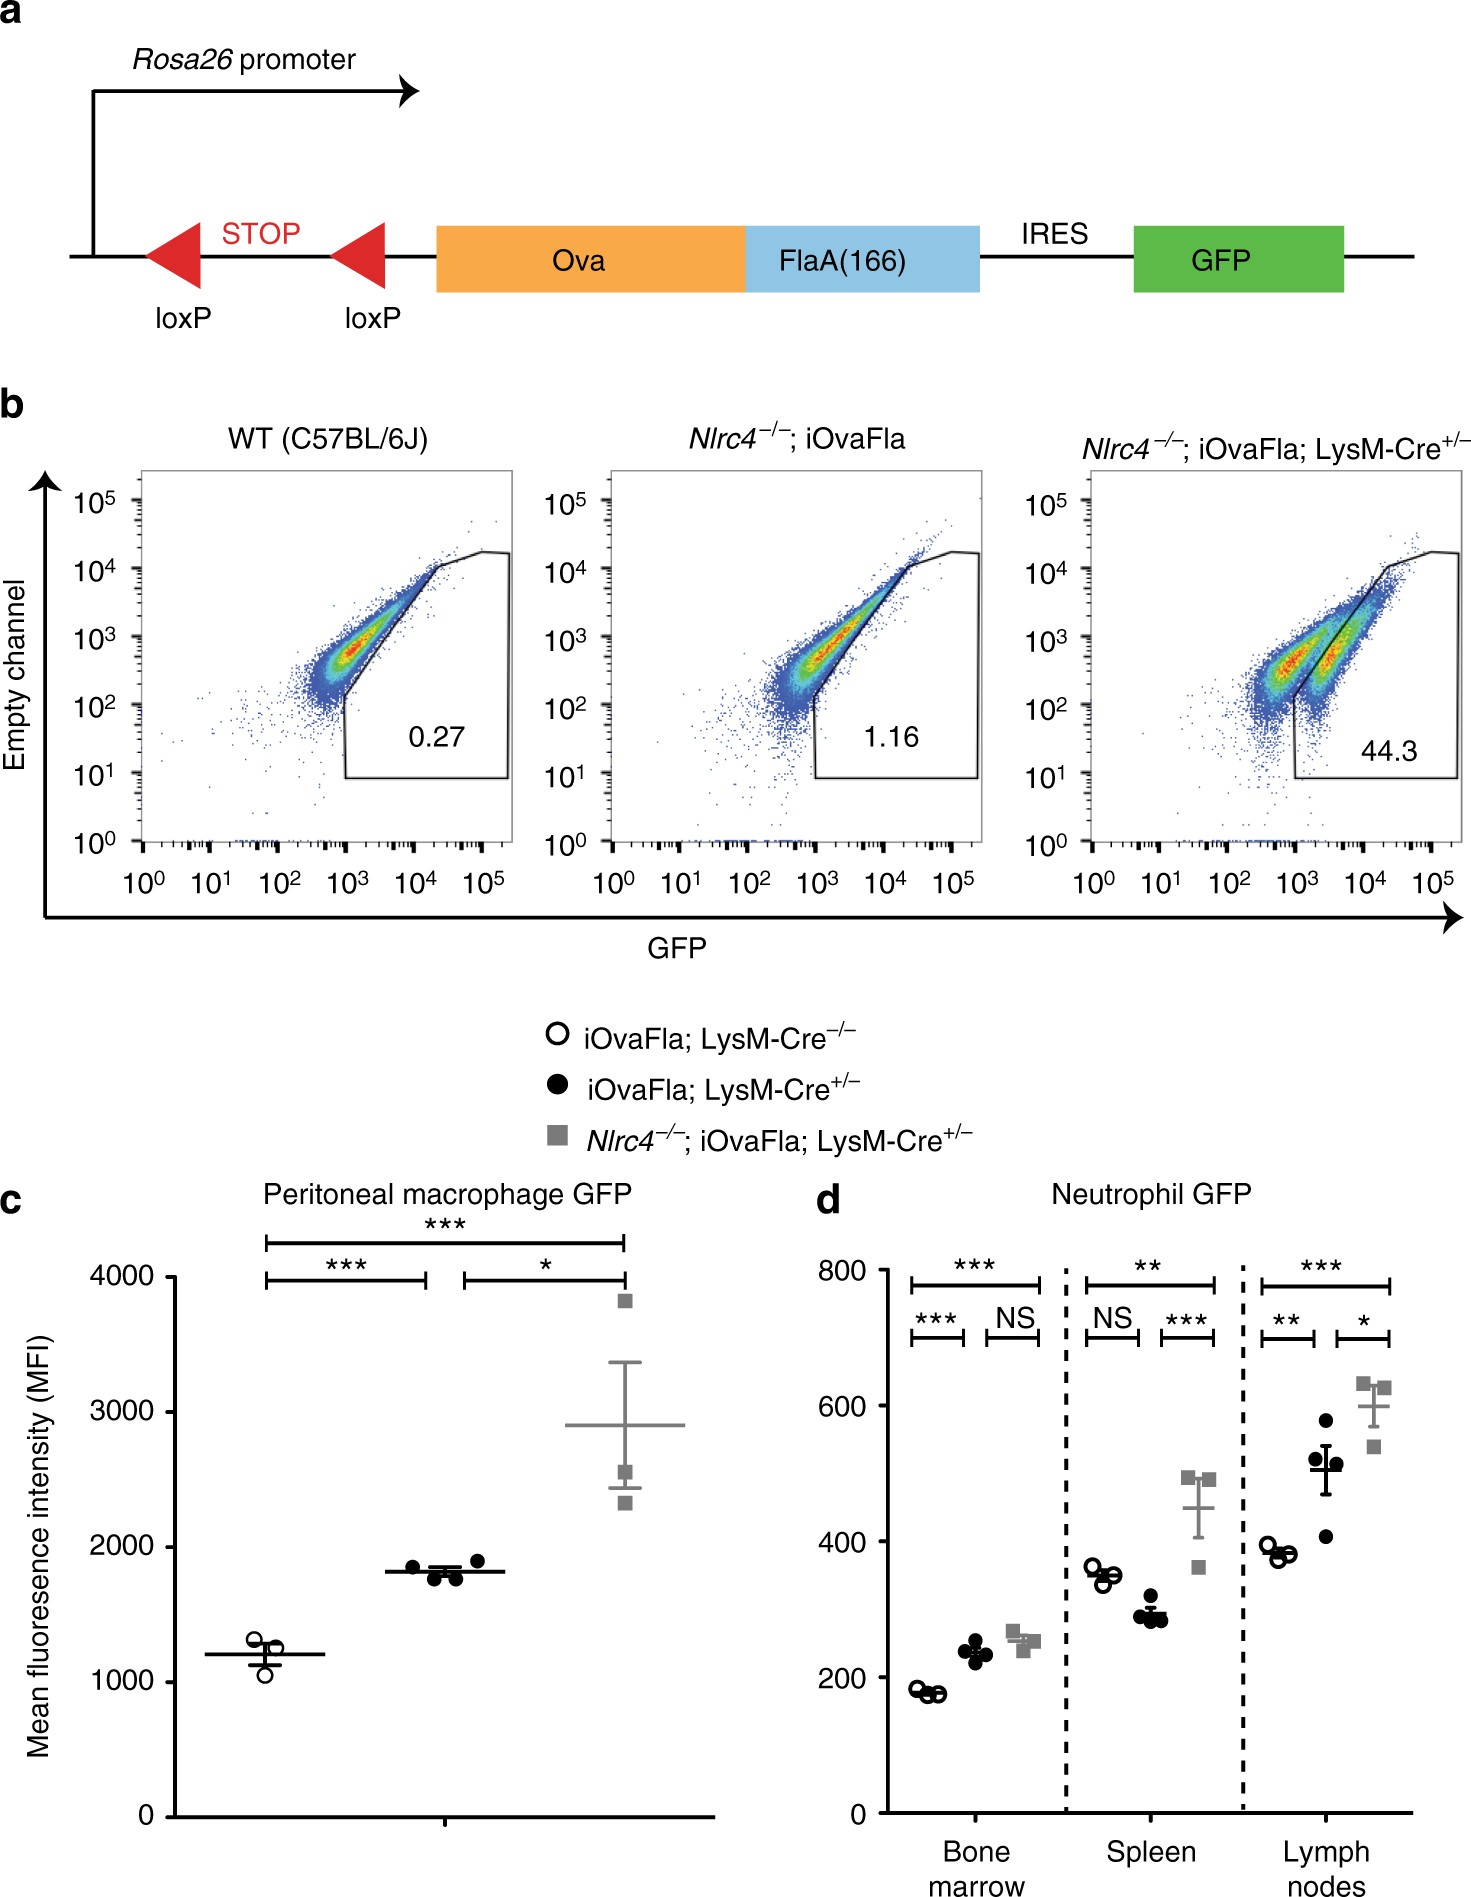 naipnlrc4 activation in mrp8 cells is sufficient to cause systemic disease nature